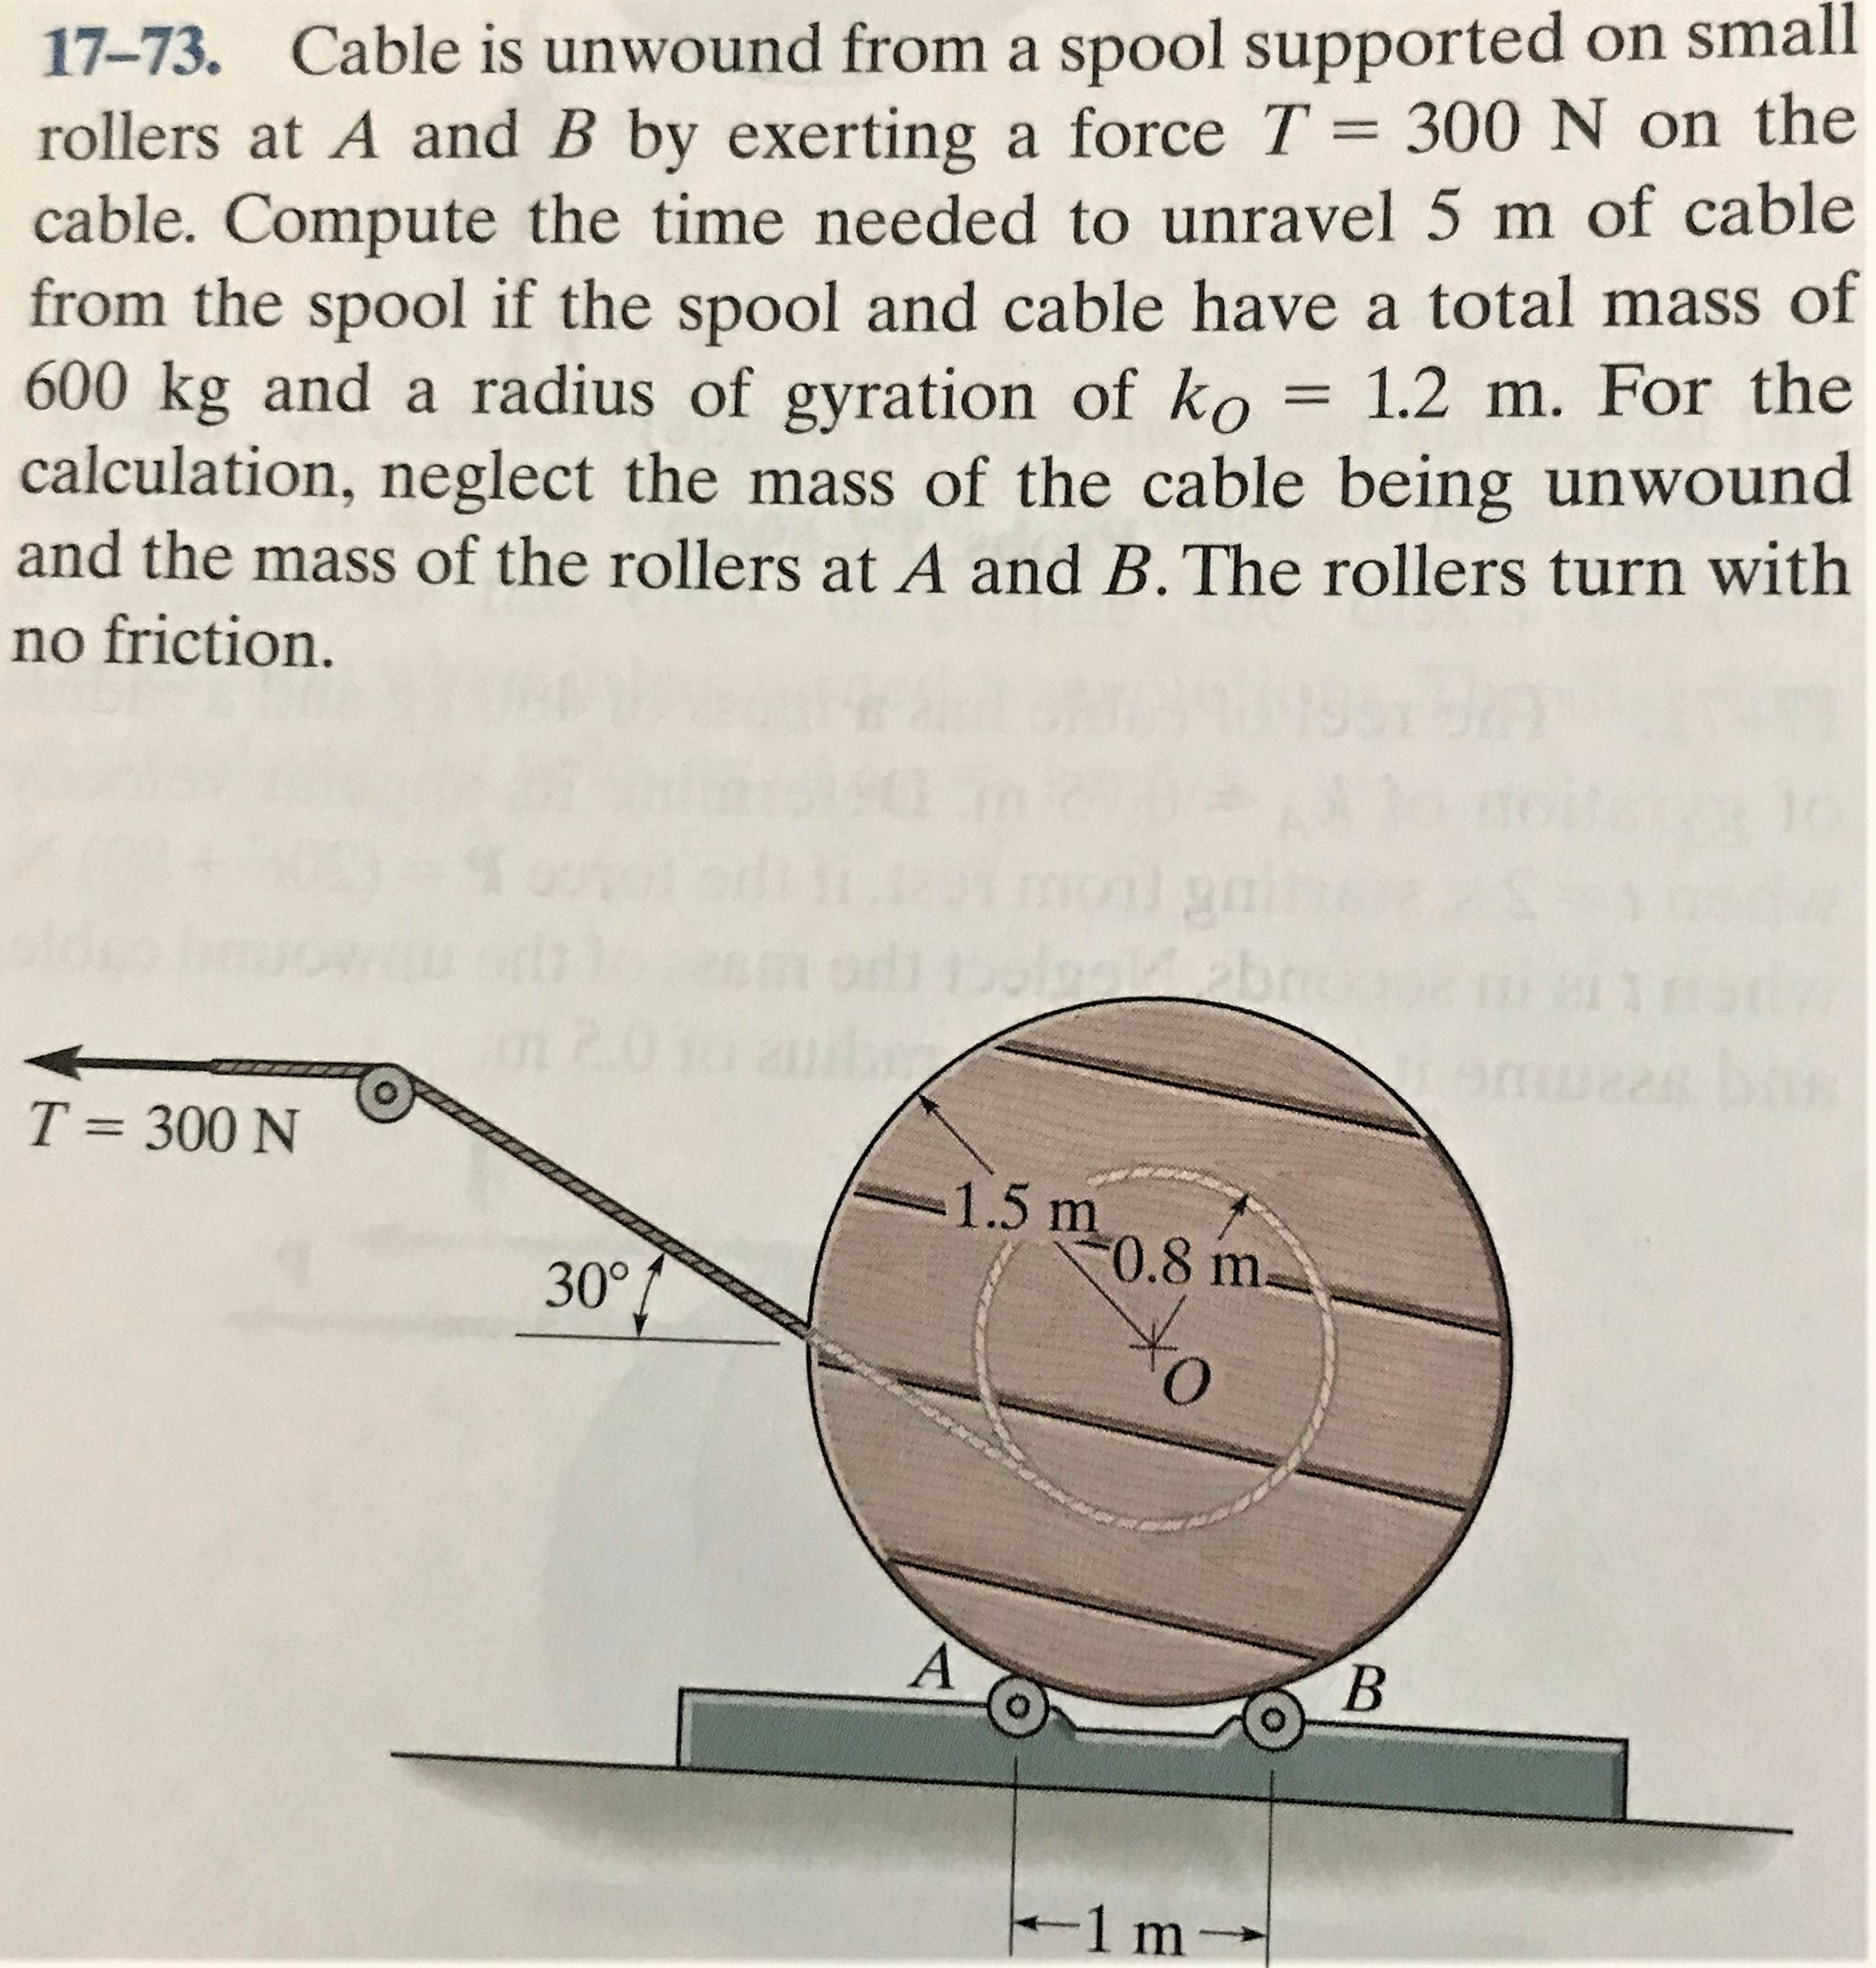 17-73. Cable is unwound from a spool supported on small rollers at A and B by exerting a force T = 300 N on the cable. Compute the time needed to unravel 5 m of cable from the spool if the spool and cable have a total mass of 600 kg and a radius of gyration of ko = 1.2 m. For the calculation, neglect the mass of the cable being unwound and the mass of the rollers at A and B.The rollers turn with %3| no friction. mont 11 T = 300 N 1.5 m 0.8 m- 30° A' B